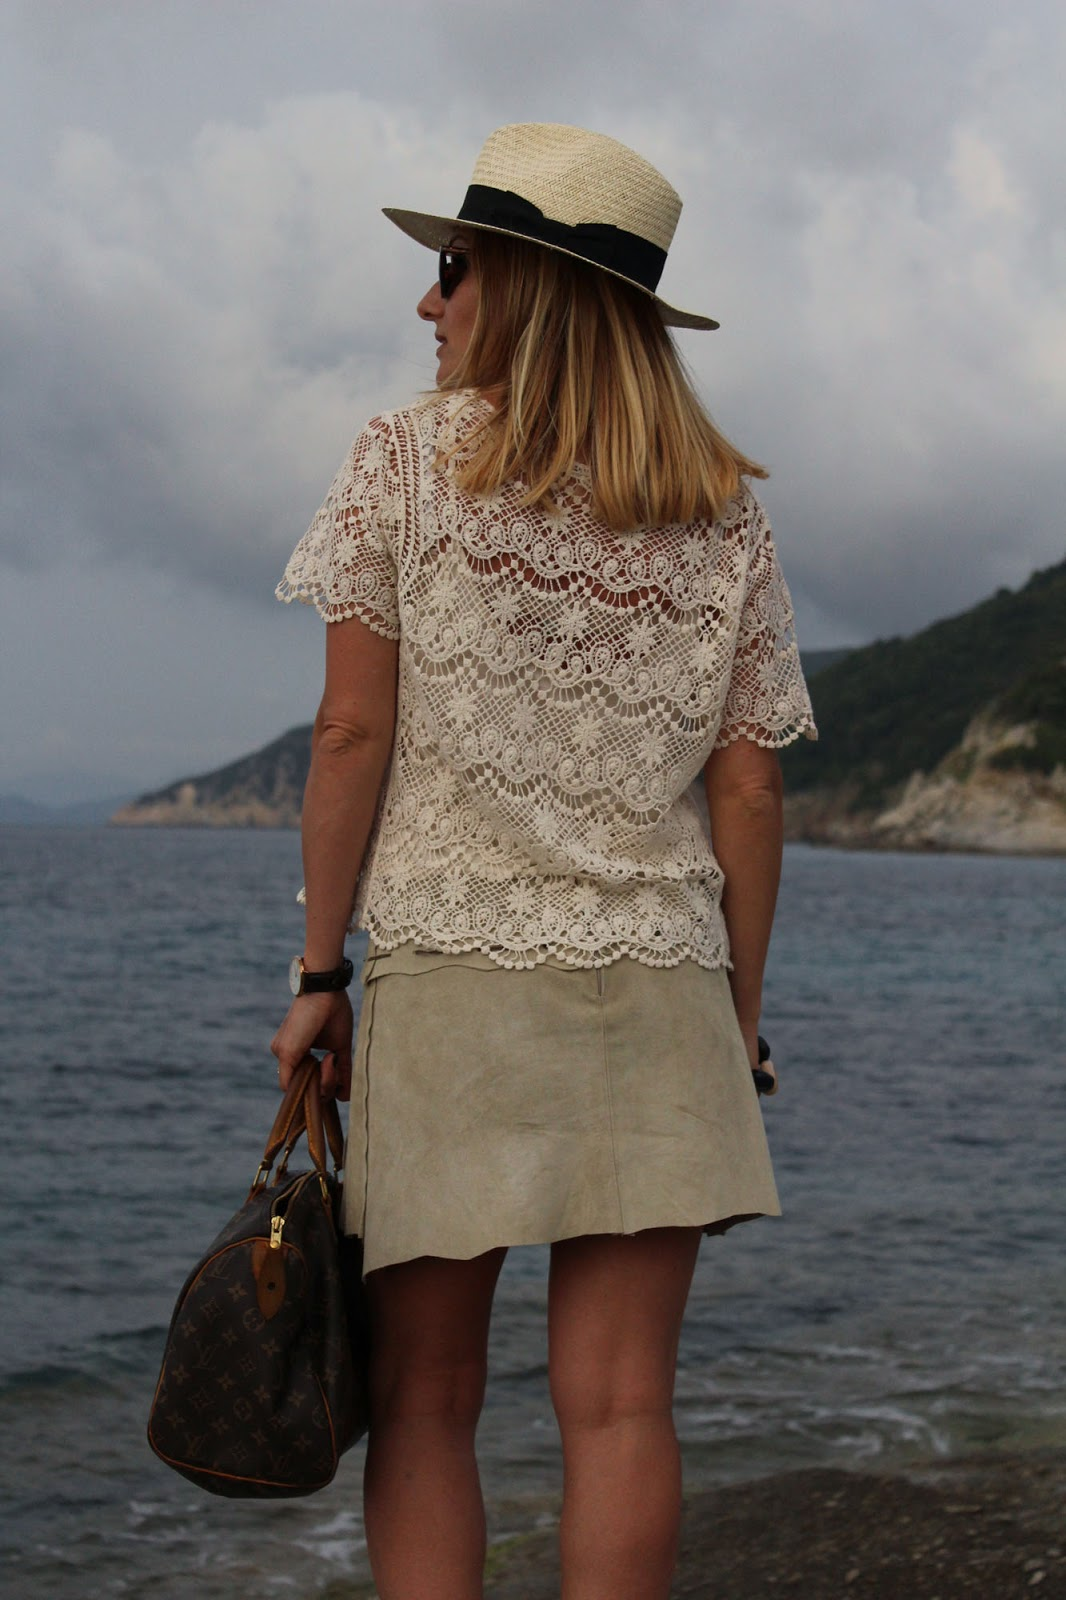 Eniwhere Fashion - Boho chic outfit - Isola d'Elba - Sant'Andrea